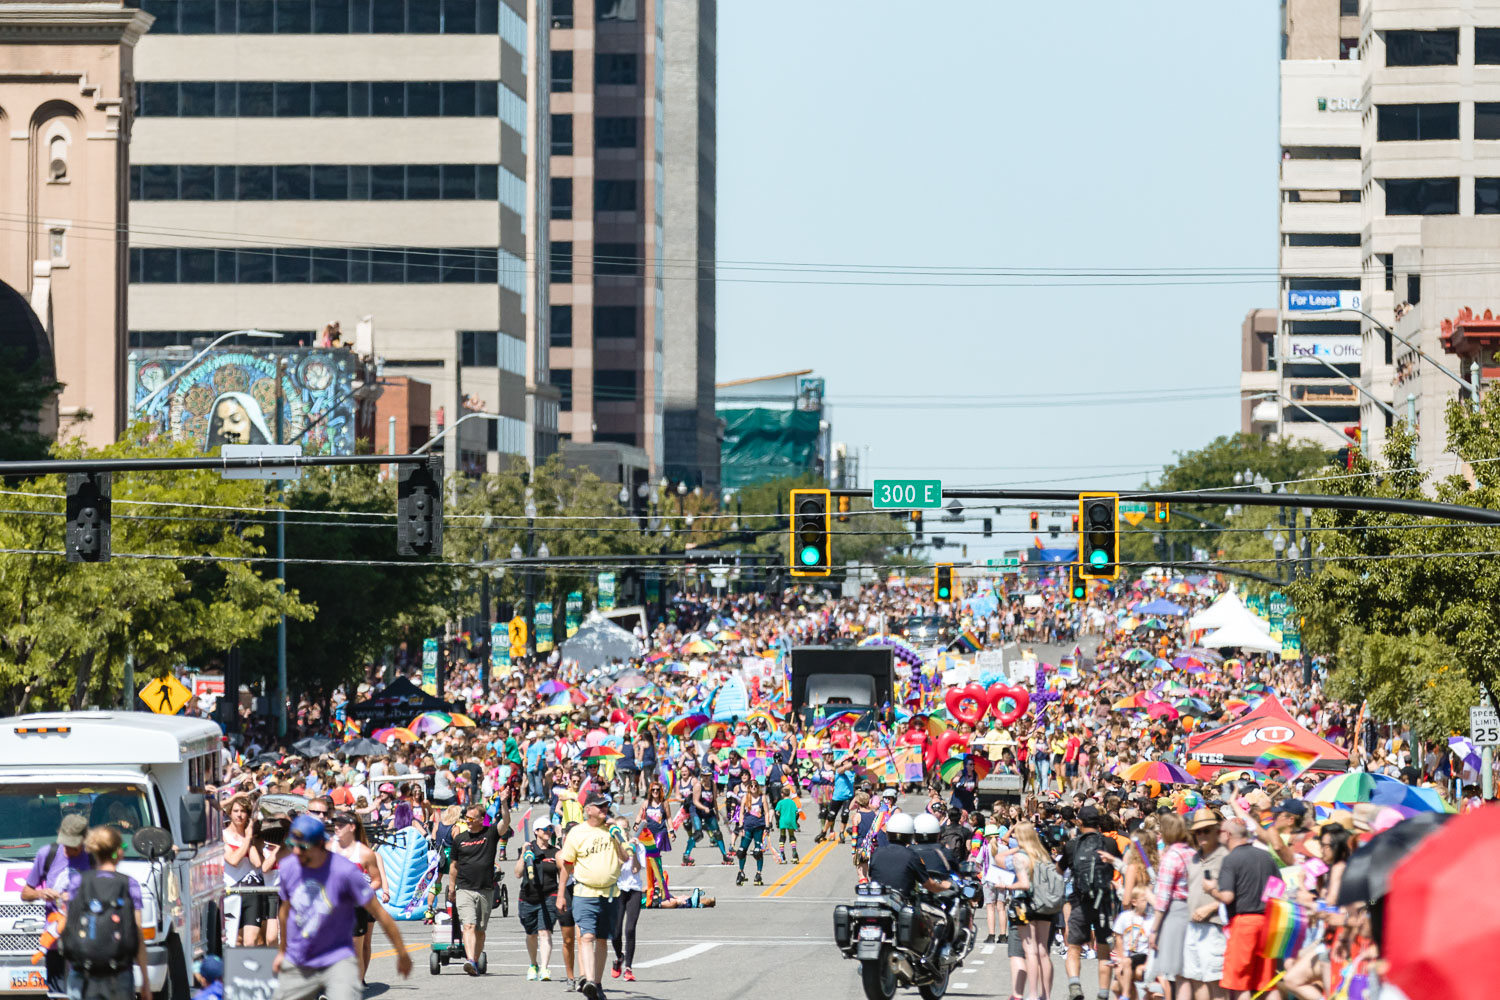 Parade lines and celebrations reach all the way down the streets. Photo: Logan Sorenson | Lmsorenson.net